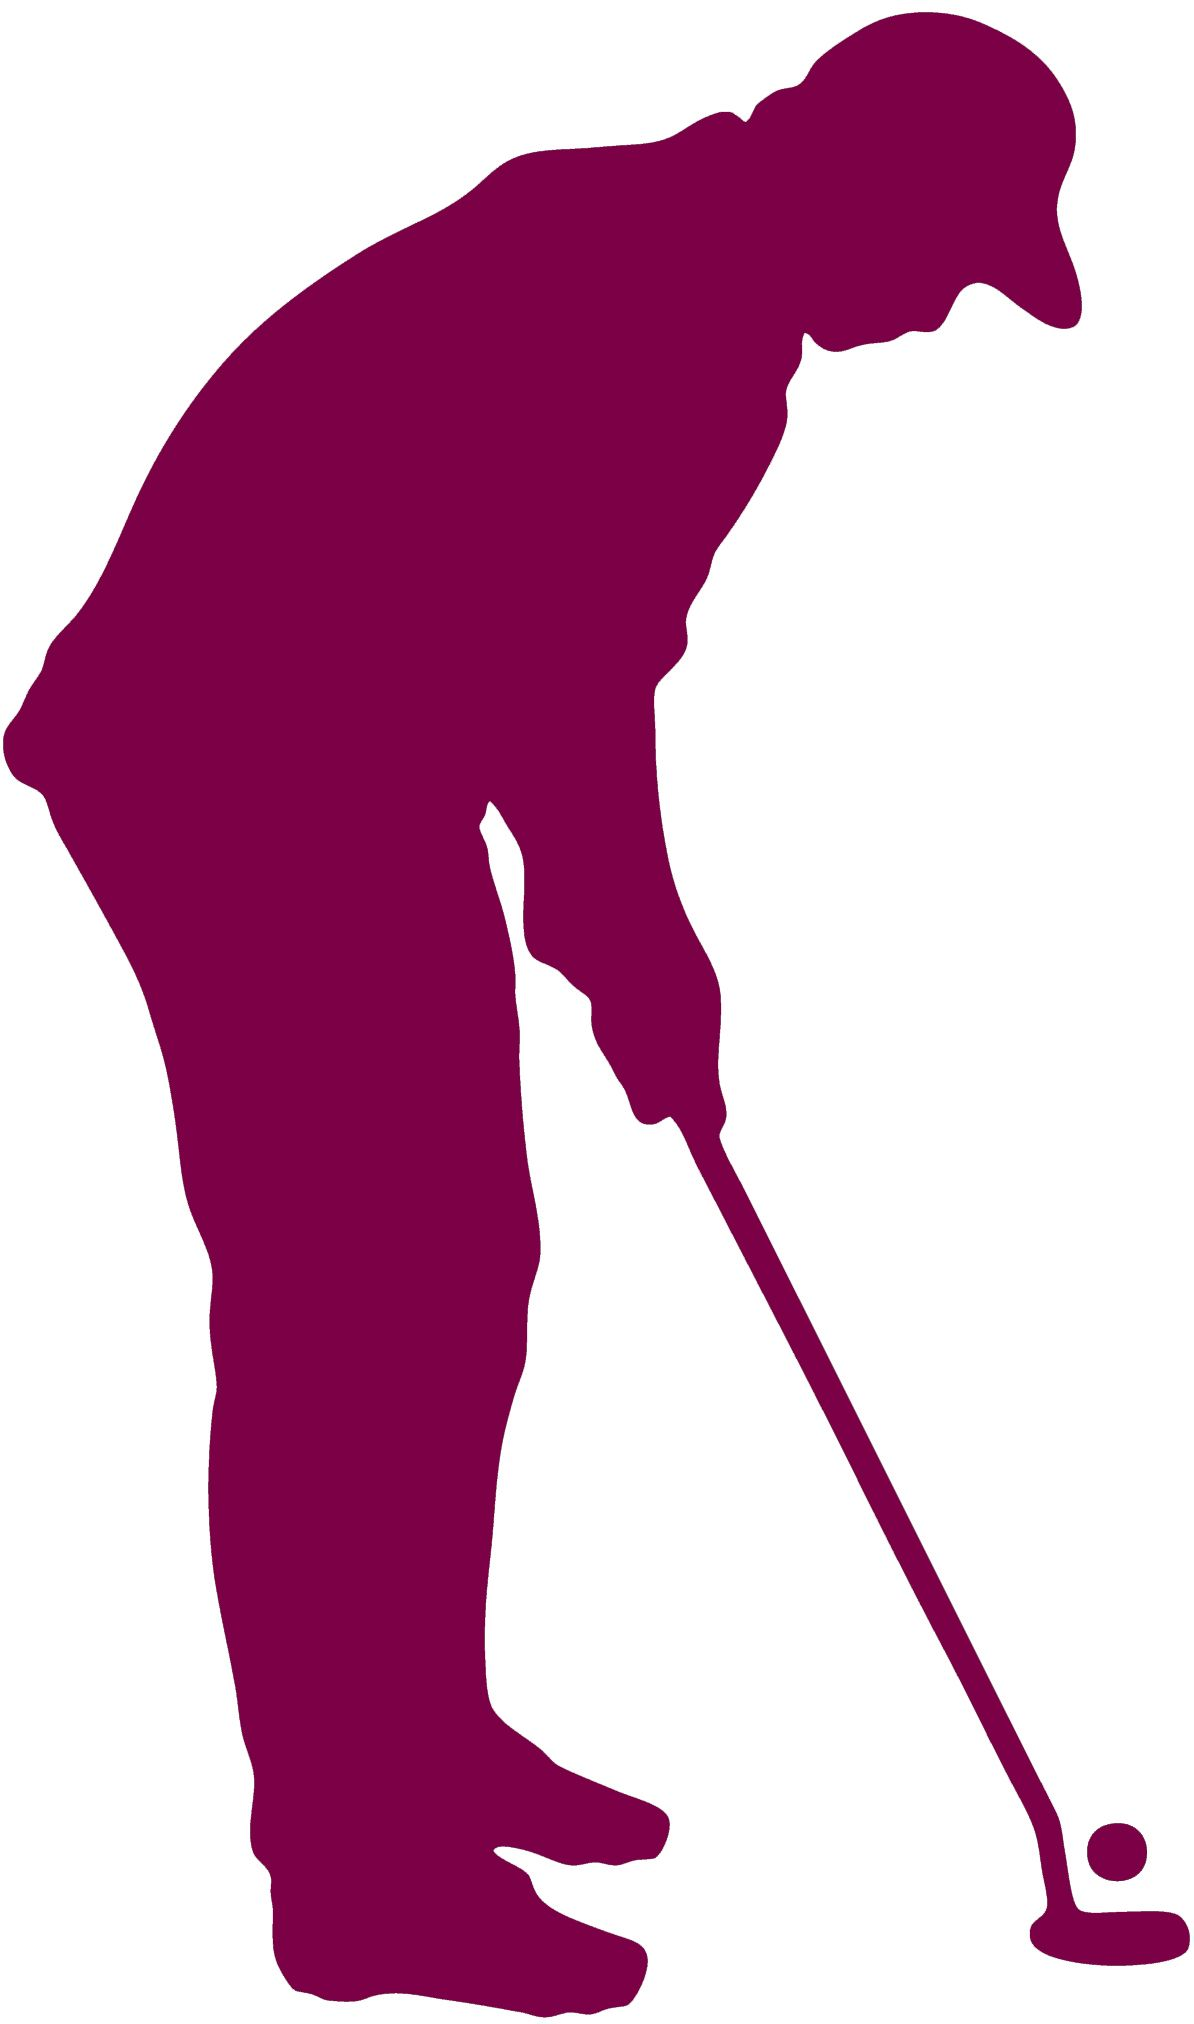 Sticker Golfeur 01 Silhouette Pinterest Golf Sports And Golf